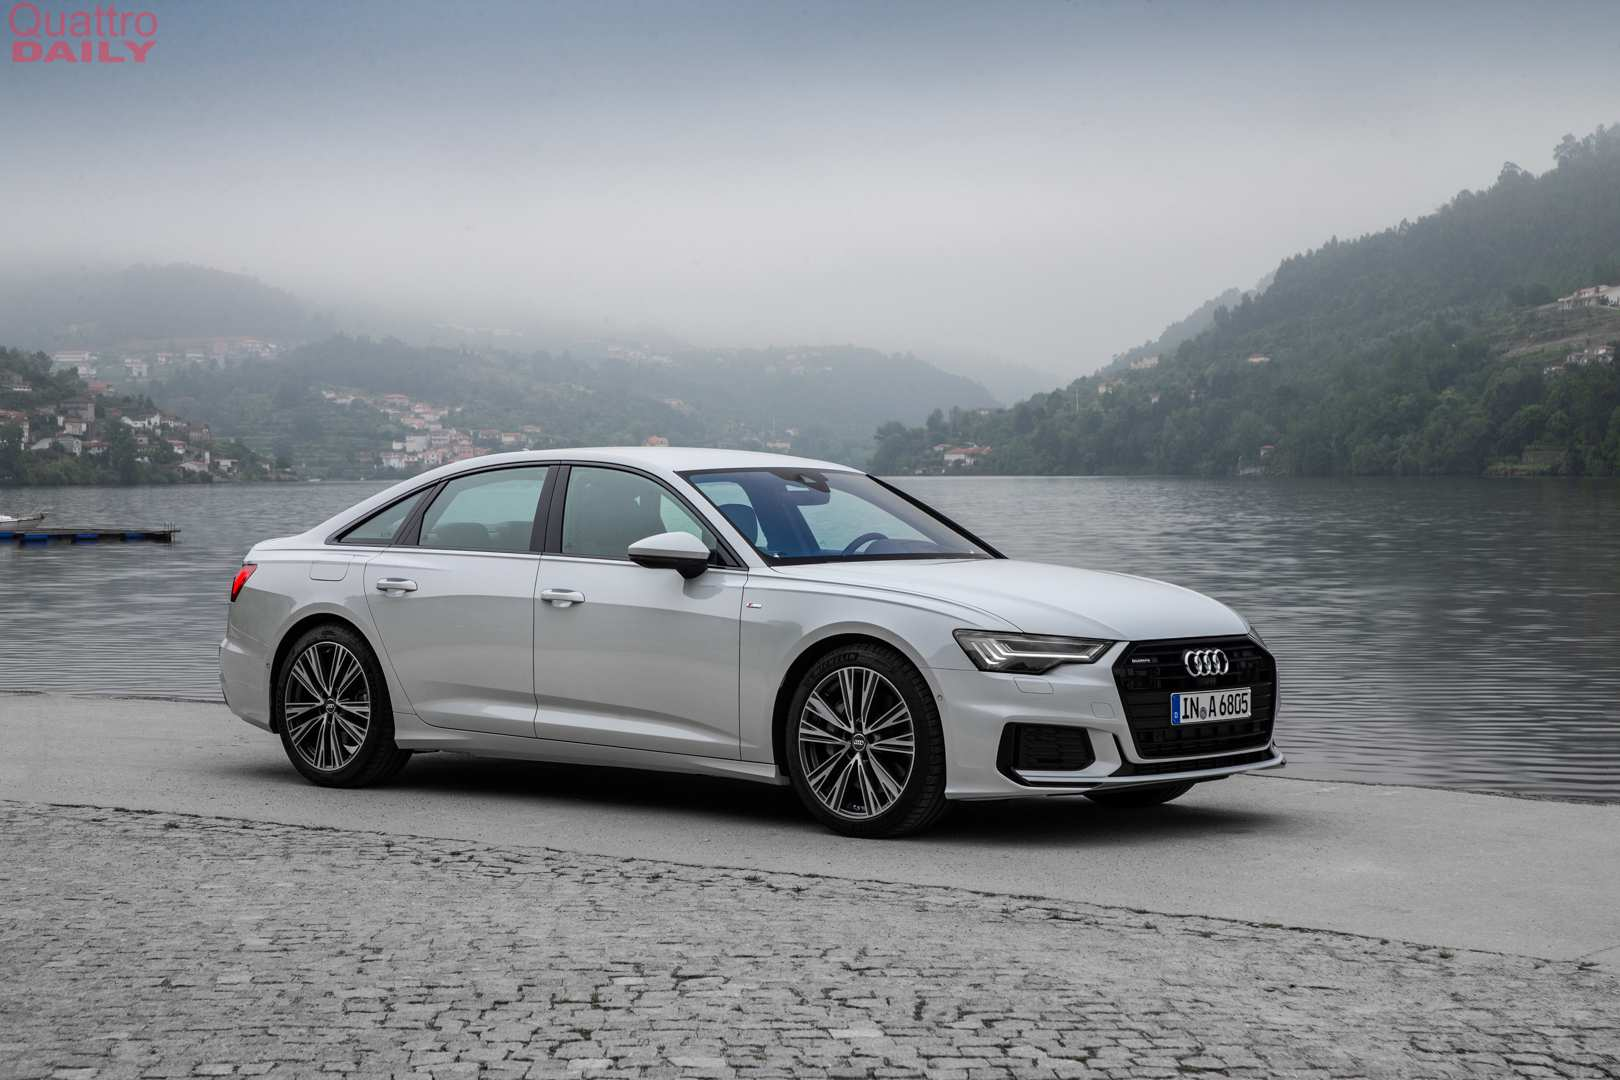 37 All New 2019 Audi Models Redesign for 2019 Audi Models